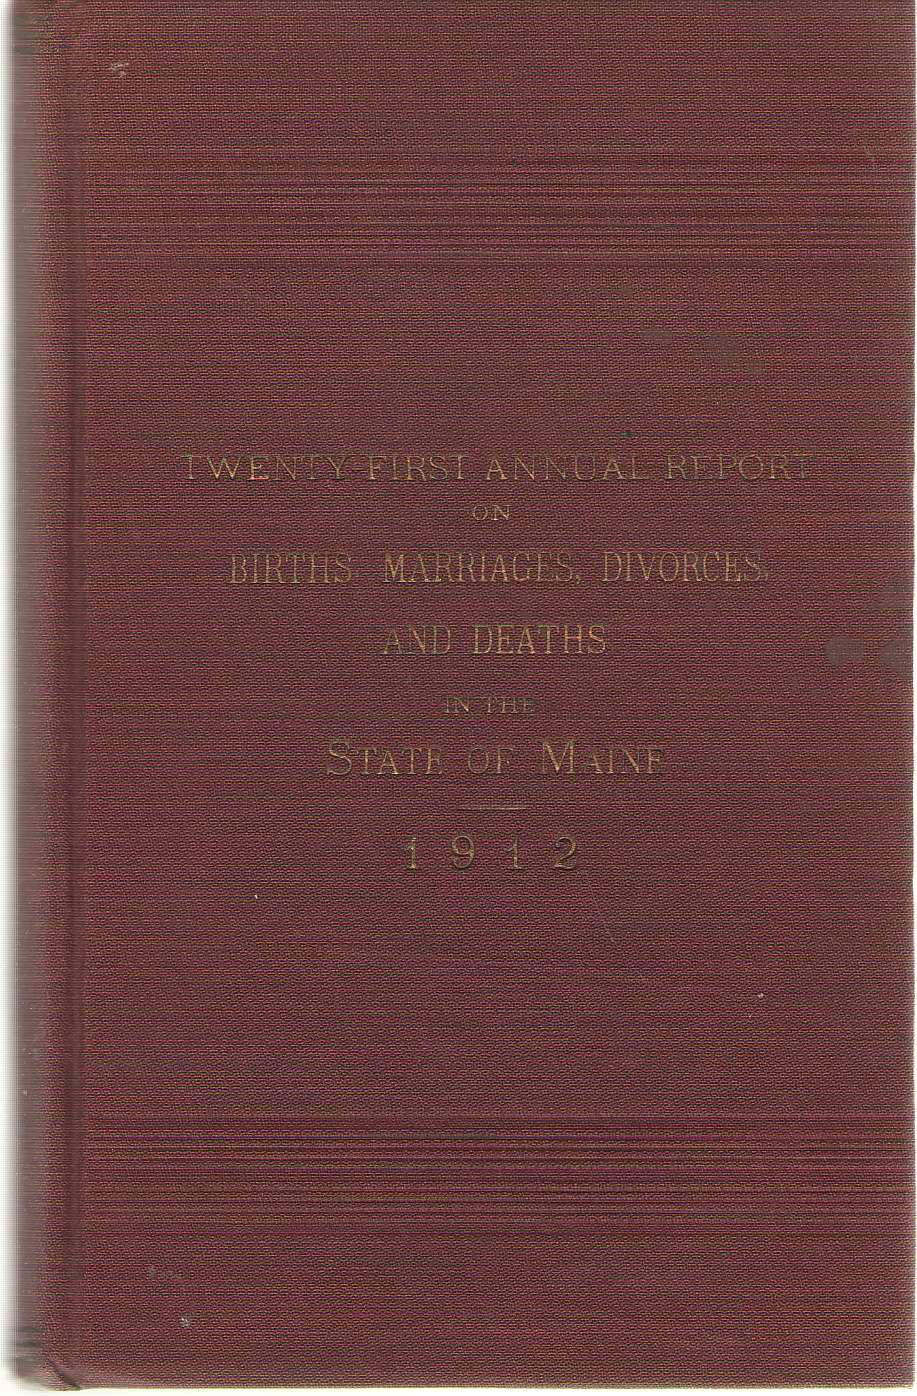 Image for Twenty First Annual Report On Births, Marriages, Divorces, And Deaths, In The State Of Maine For The Year Ending December 31, 1912